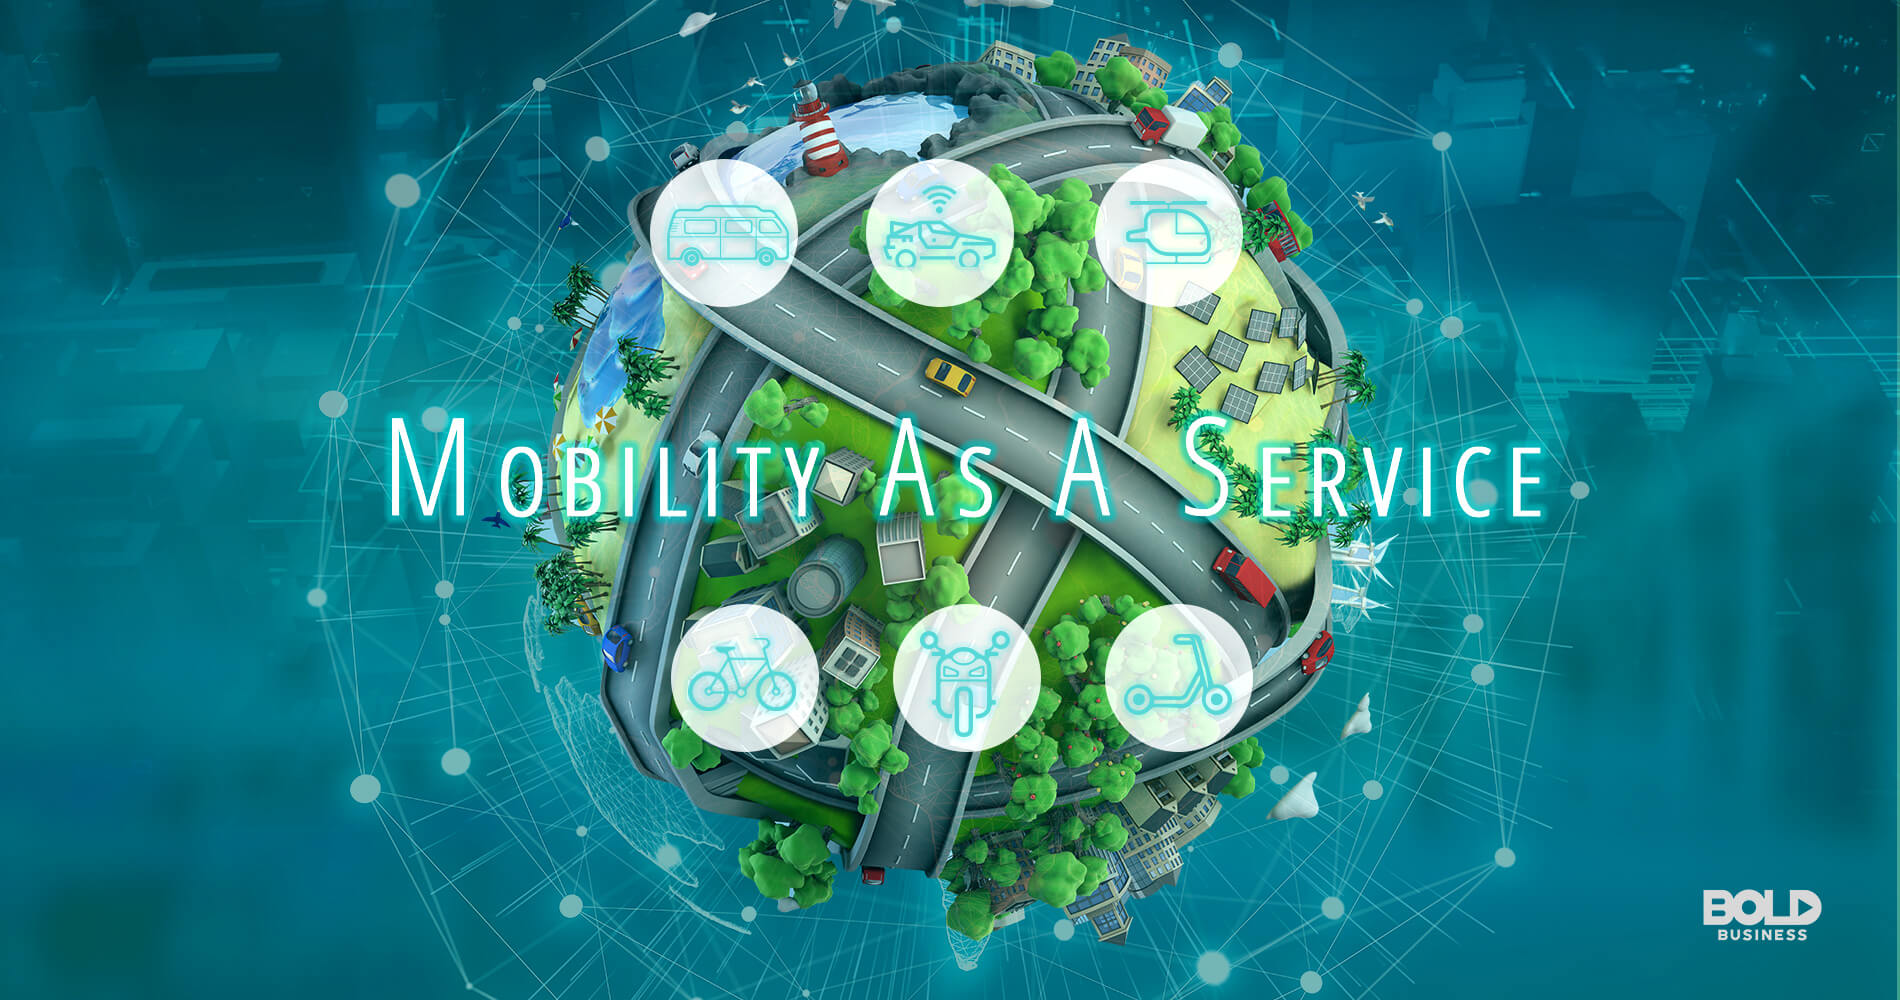 Image showing a 3d tiny planet with caption of 'Mobility As A Service'